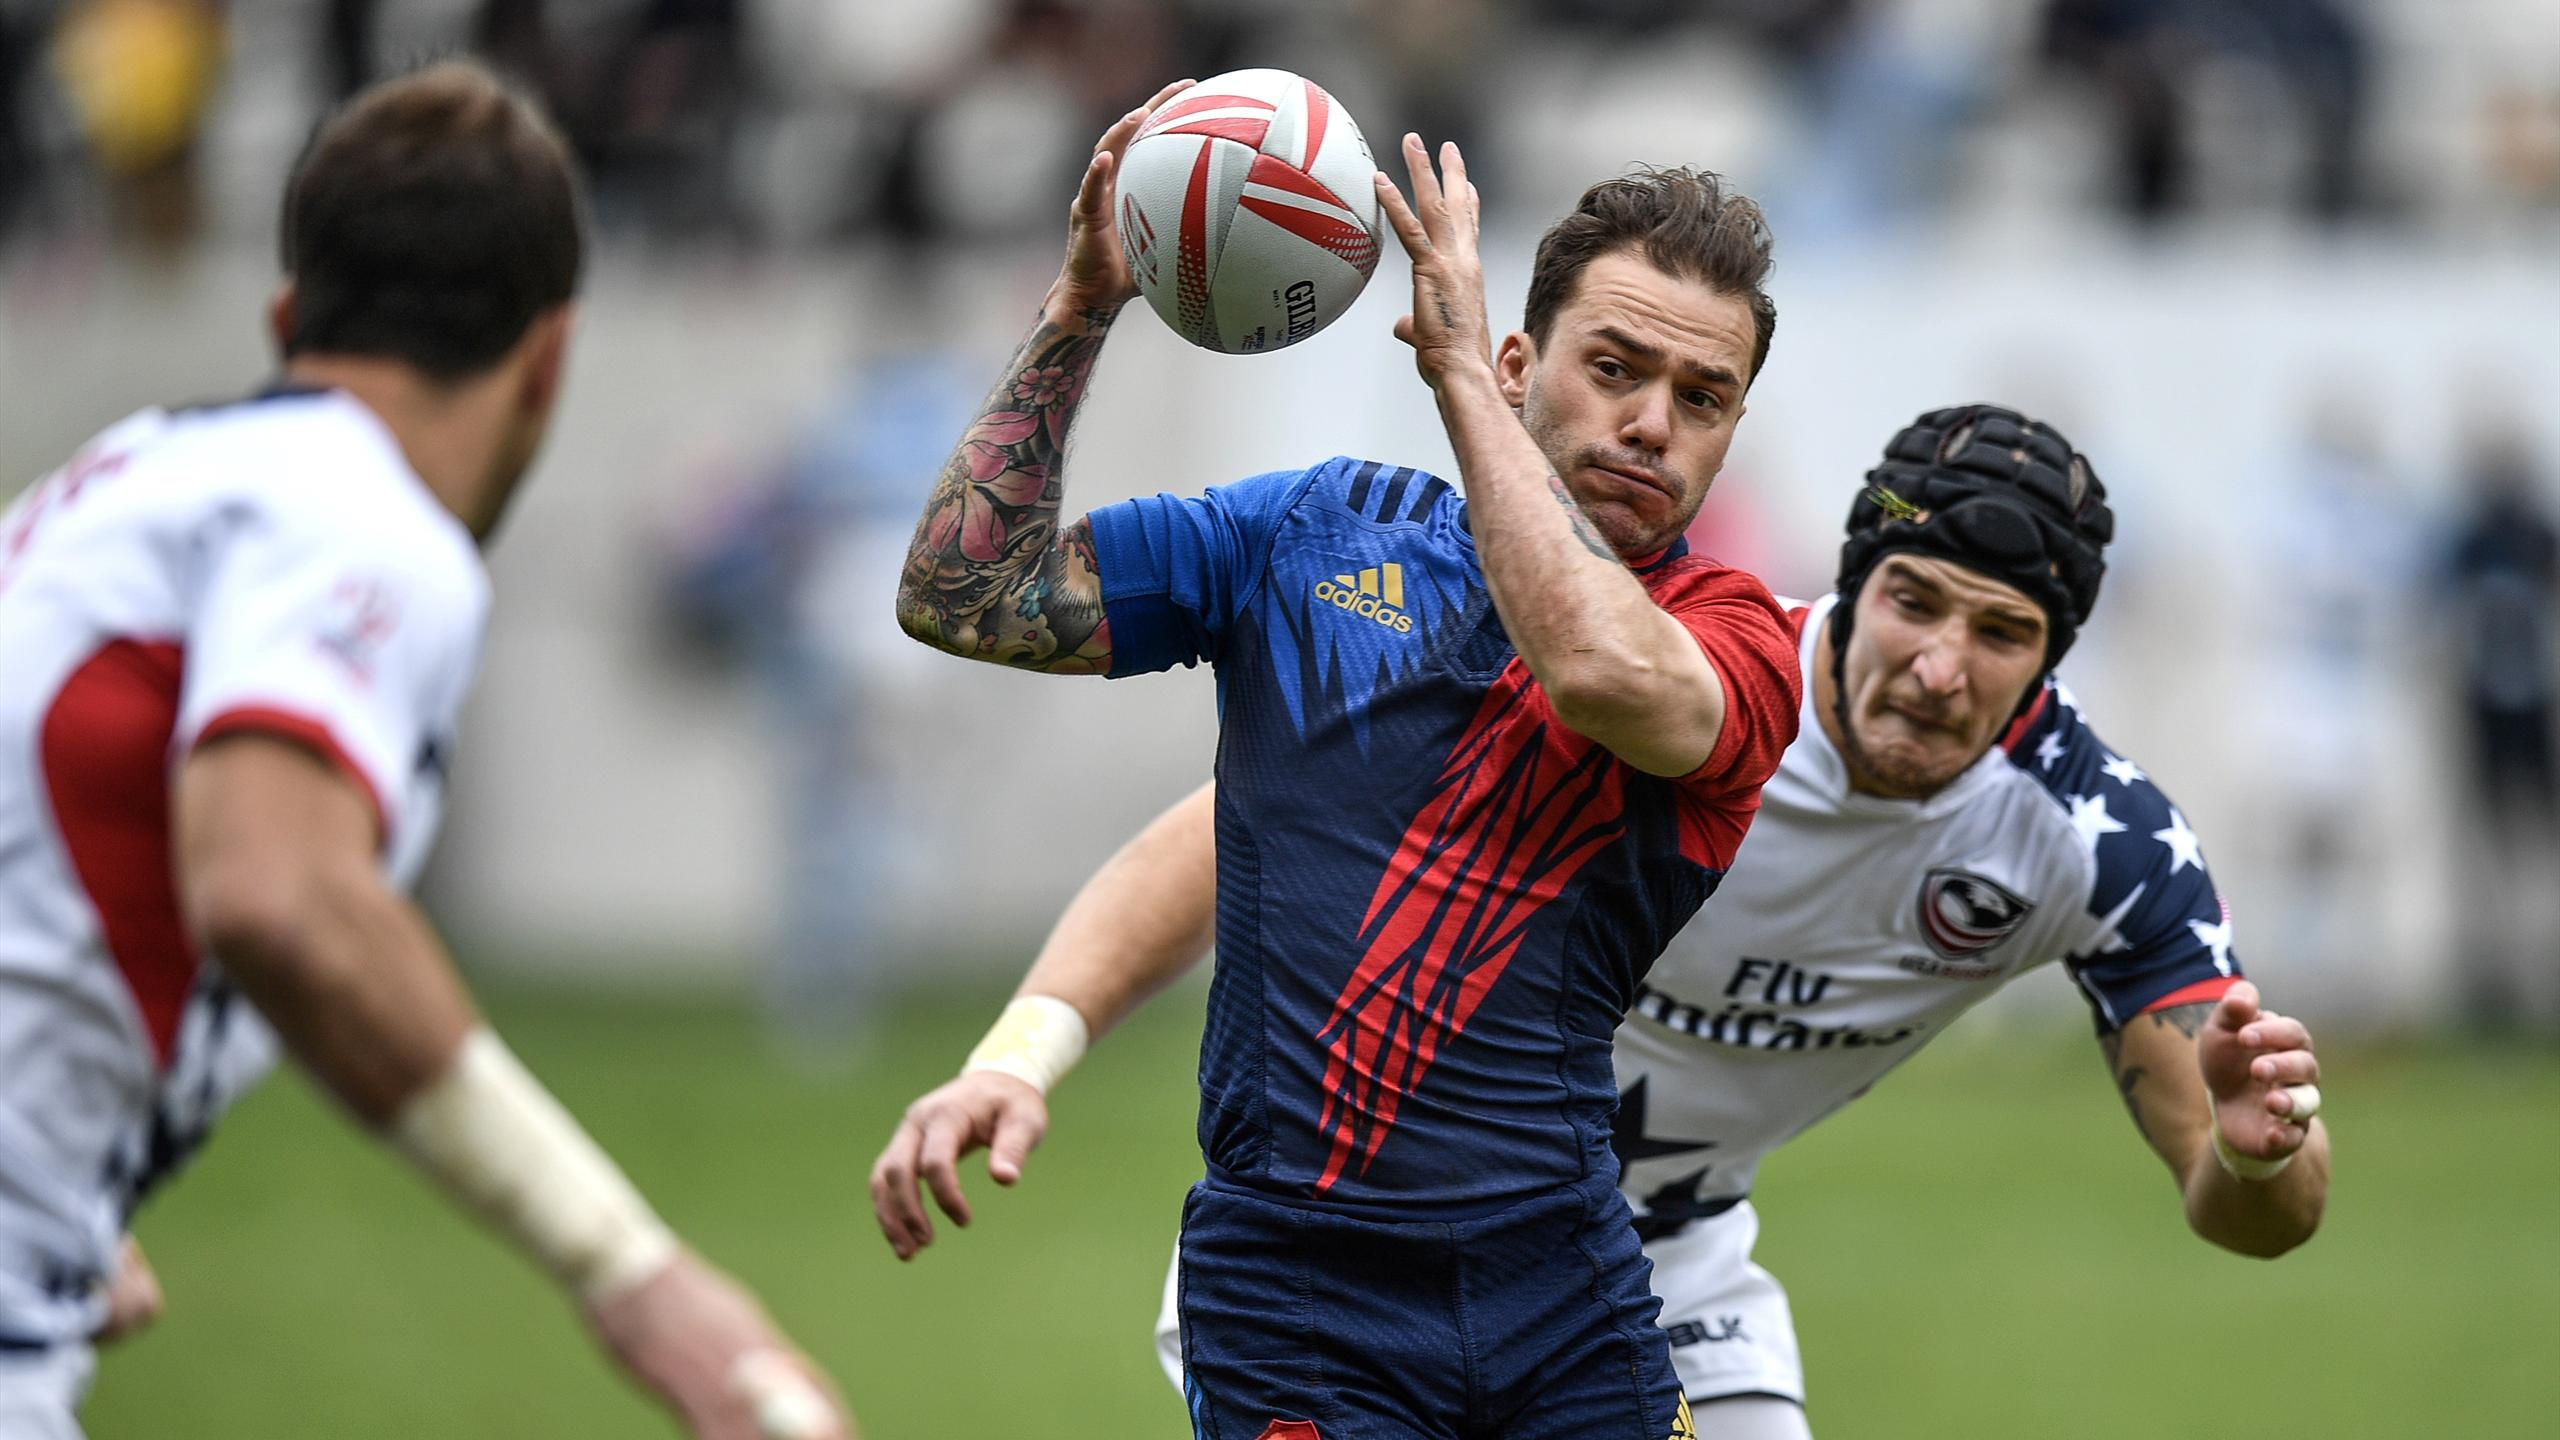 Terry Bouhraoua (France 7) face aux Etats-Unis lors du tournoi de Paris - 14 mai 2016